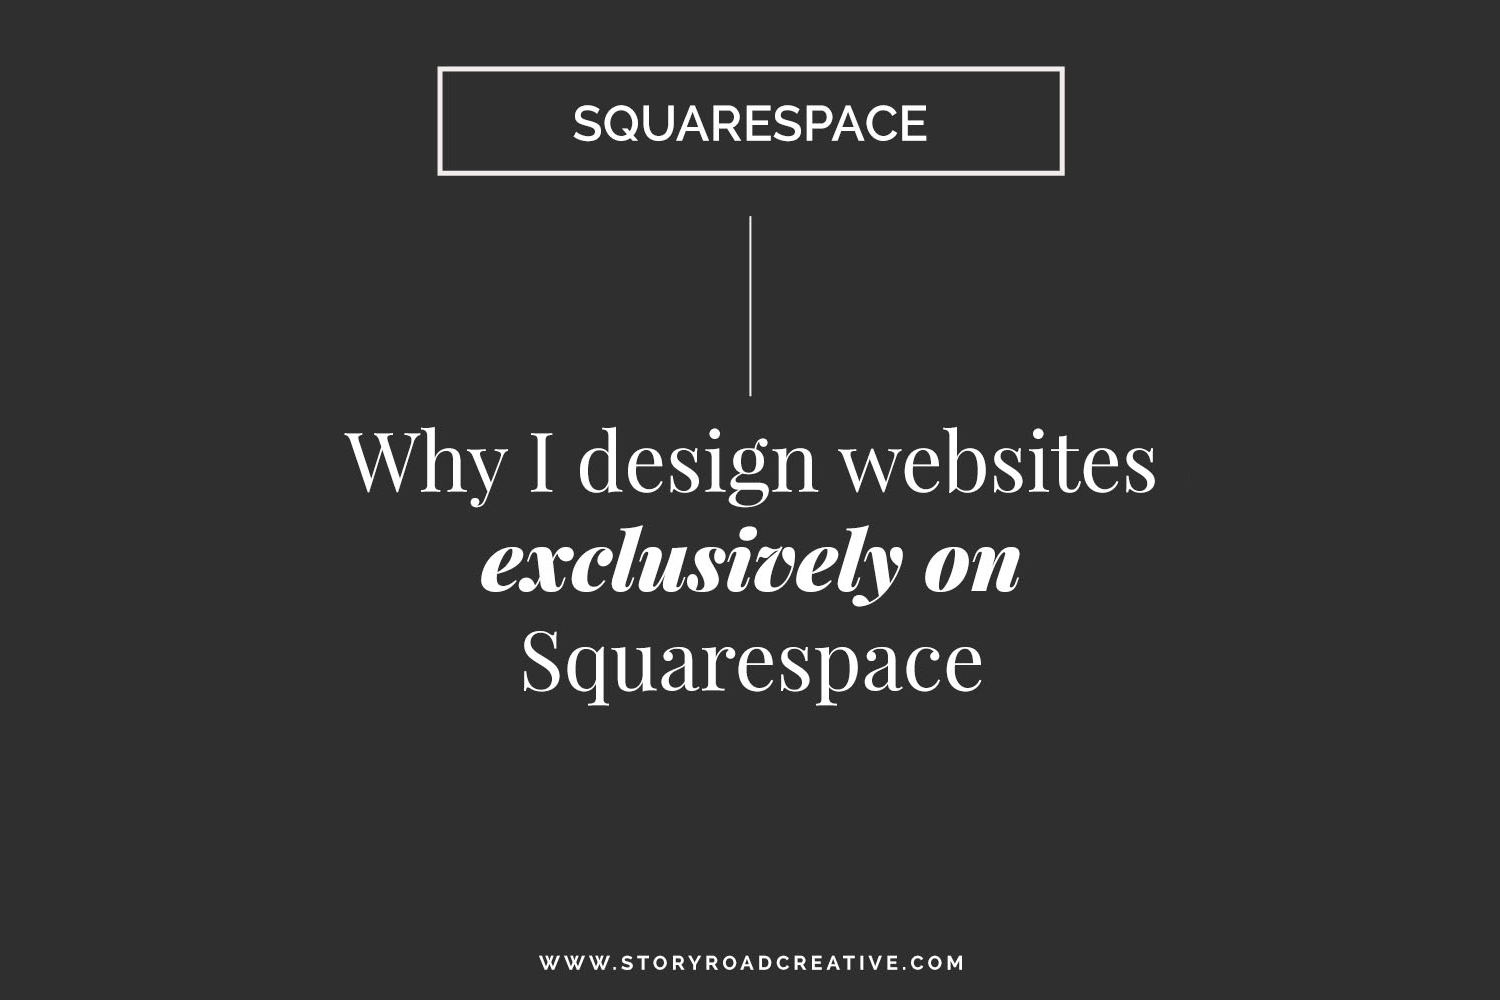 Why I design websites exclusively on Squarespace